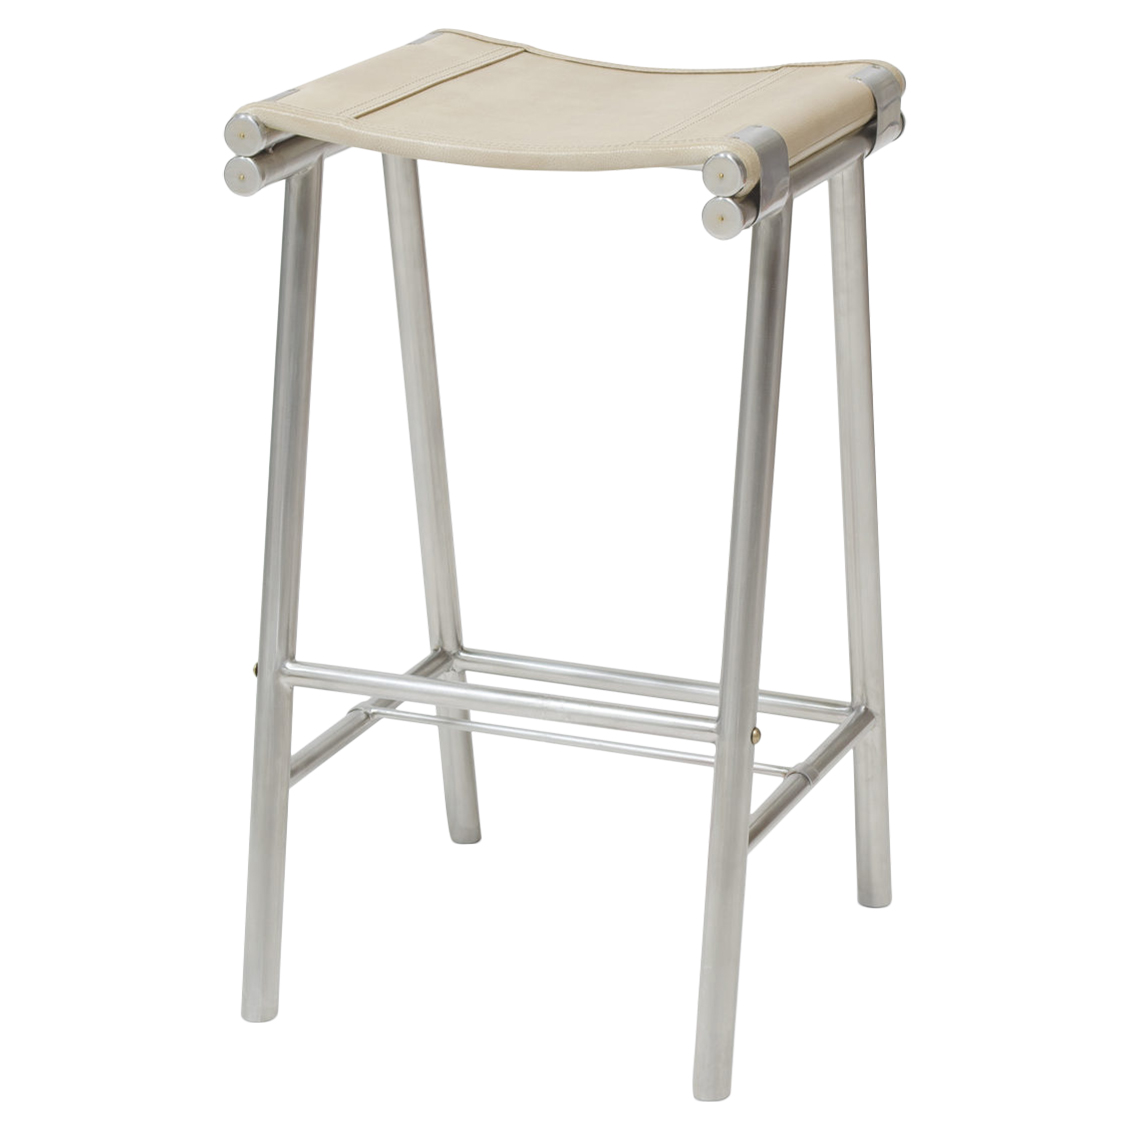 Salome Industrial Stainless Steel Cashew Leather Barstool